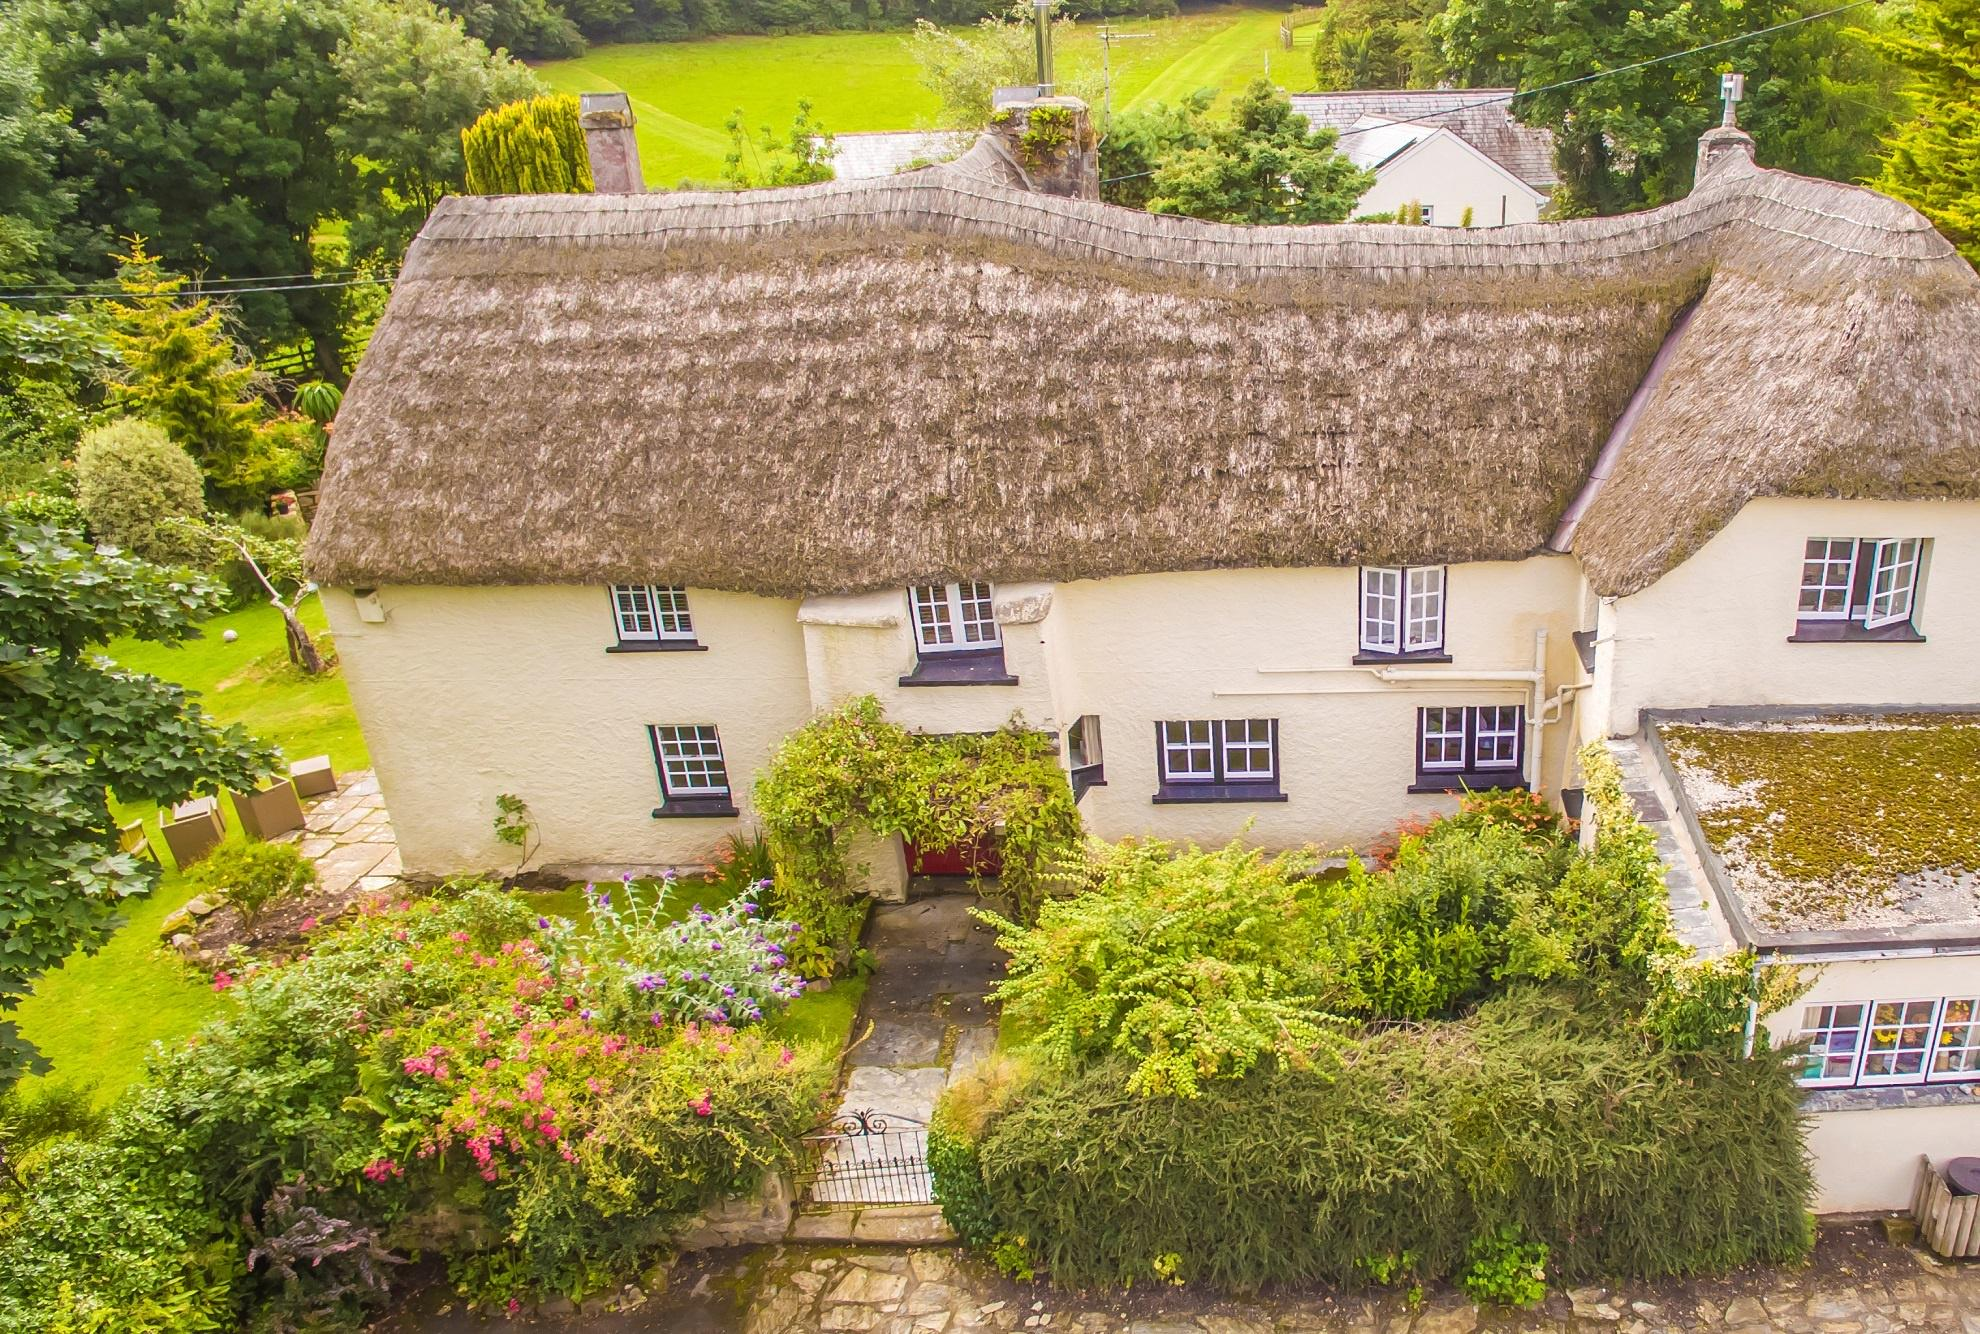 Family-friendly holiday cottages - best UK cottages for families - Cool Places to Stay in the UK